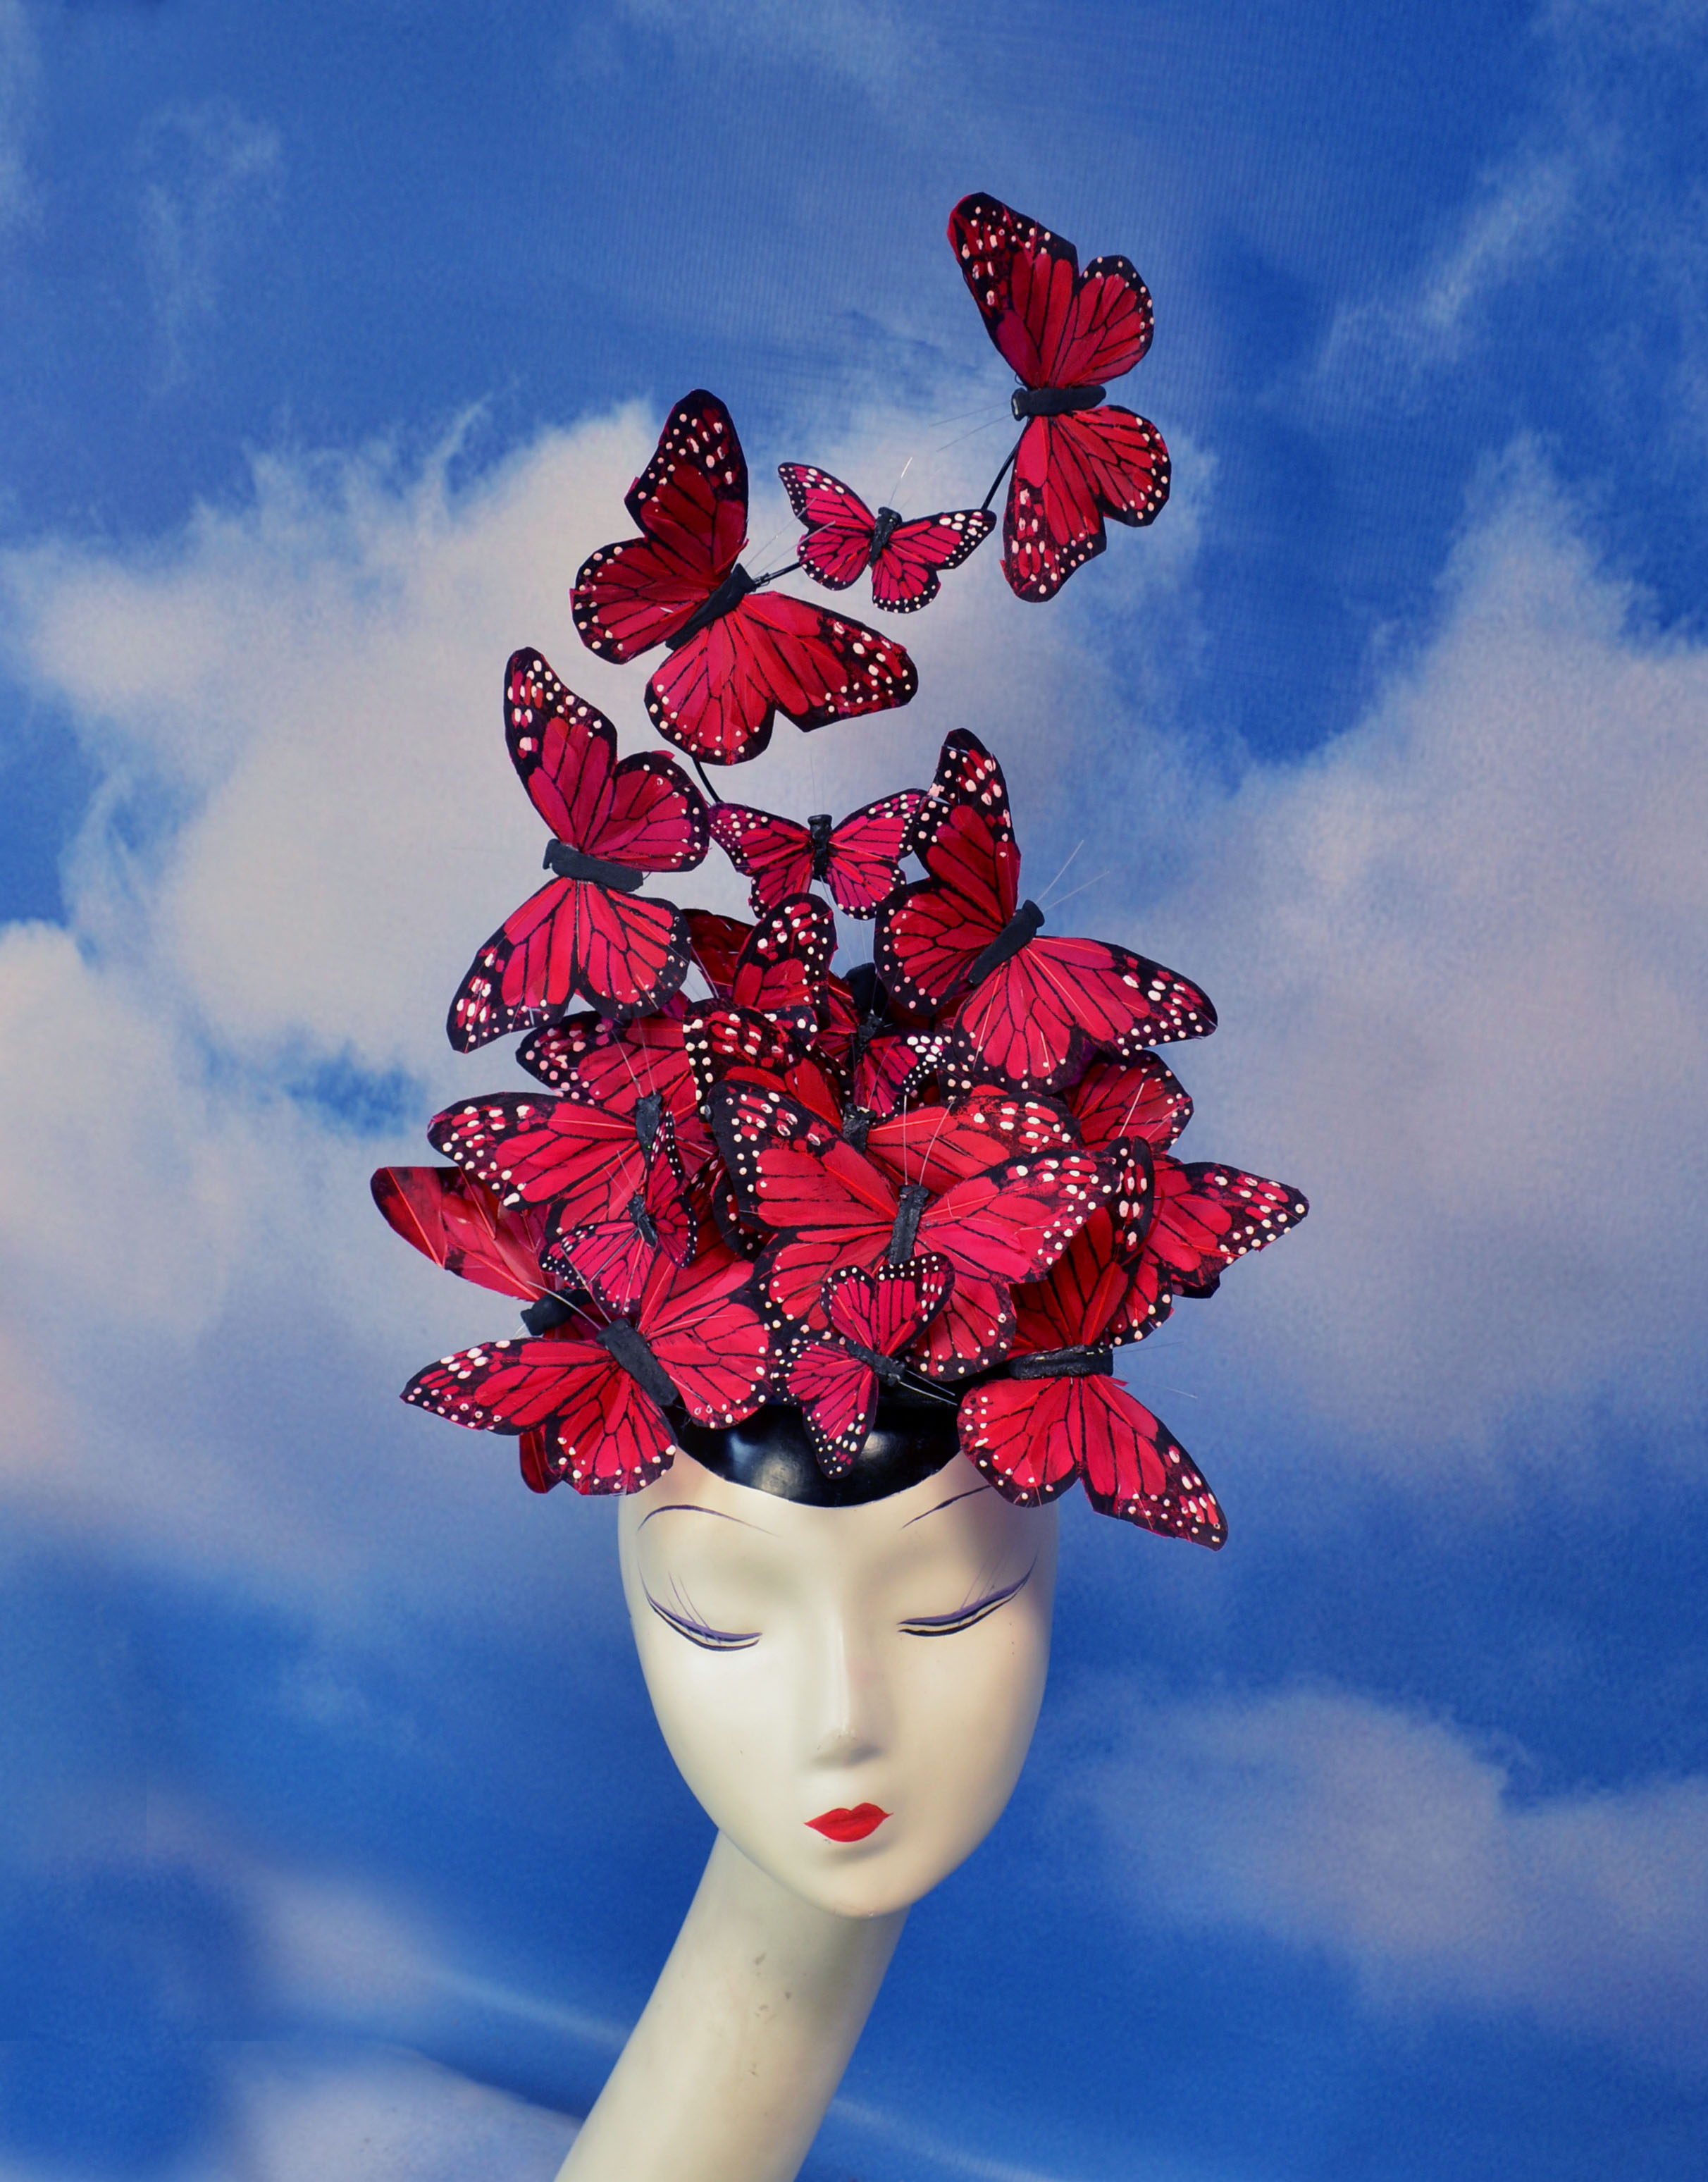 Red Madame Butterfly Feather Headpiece (4)